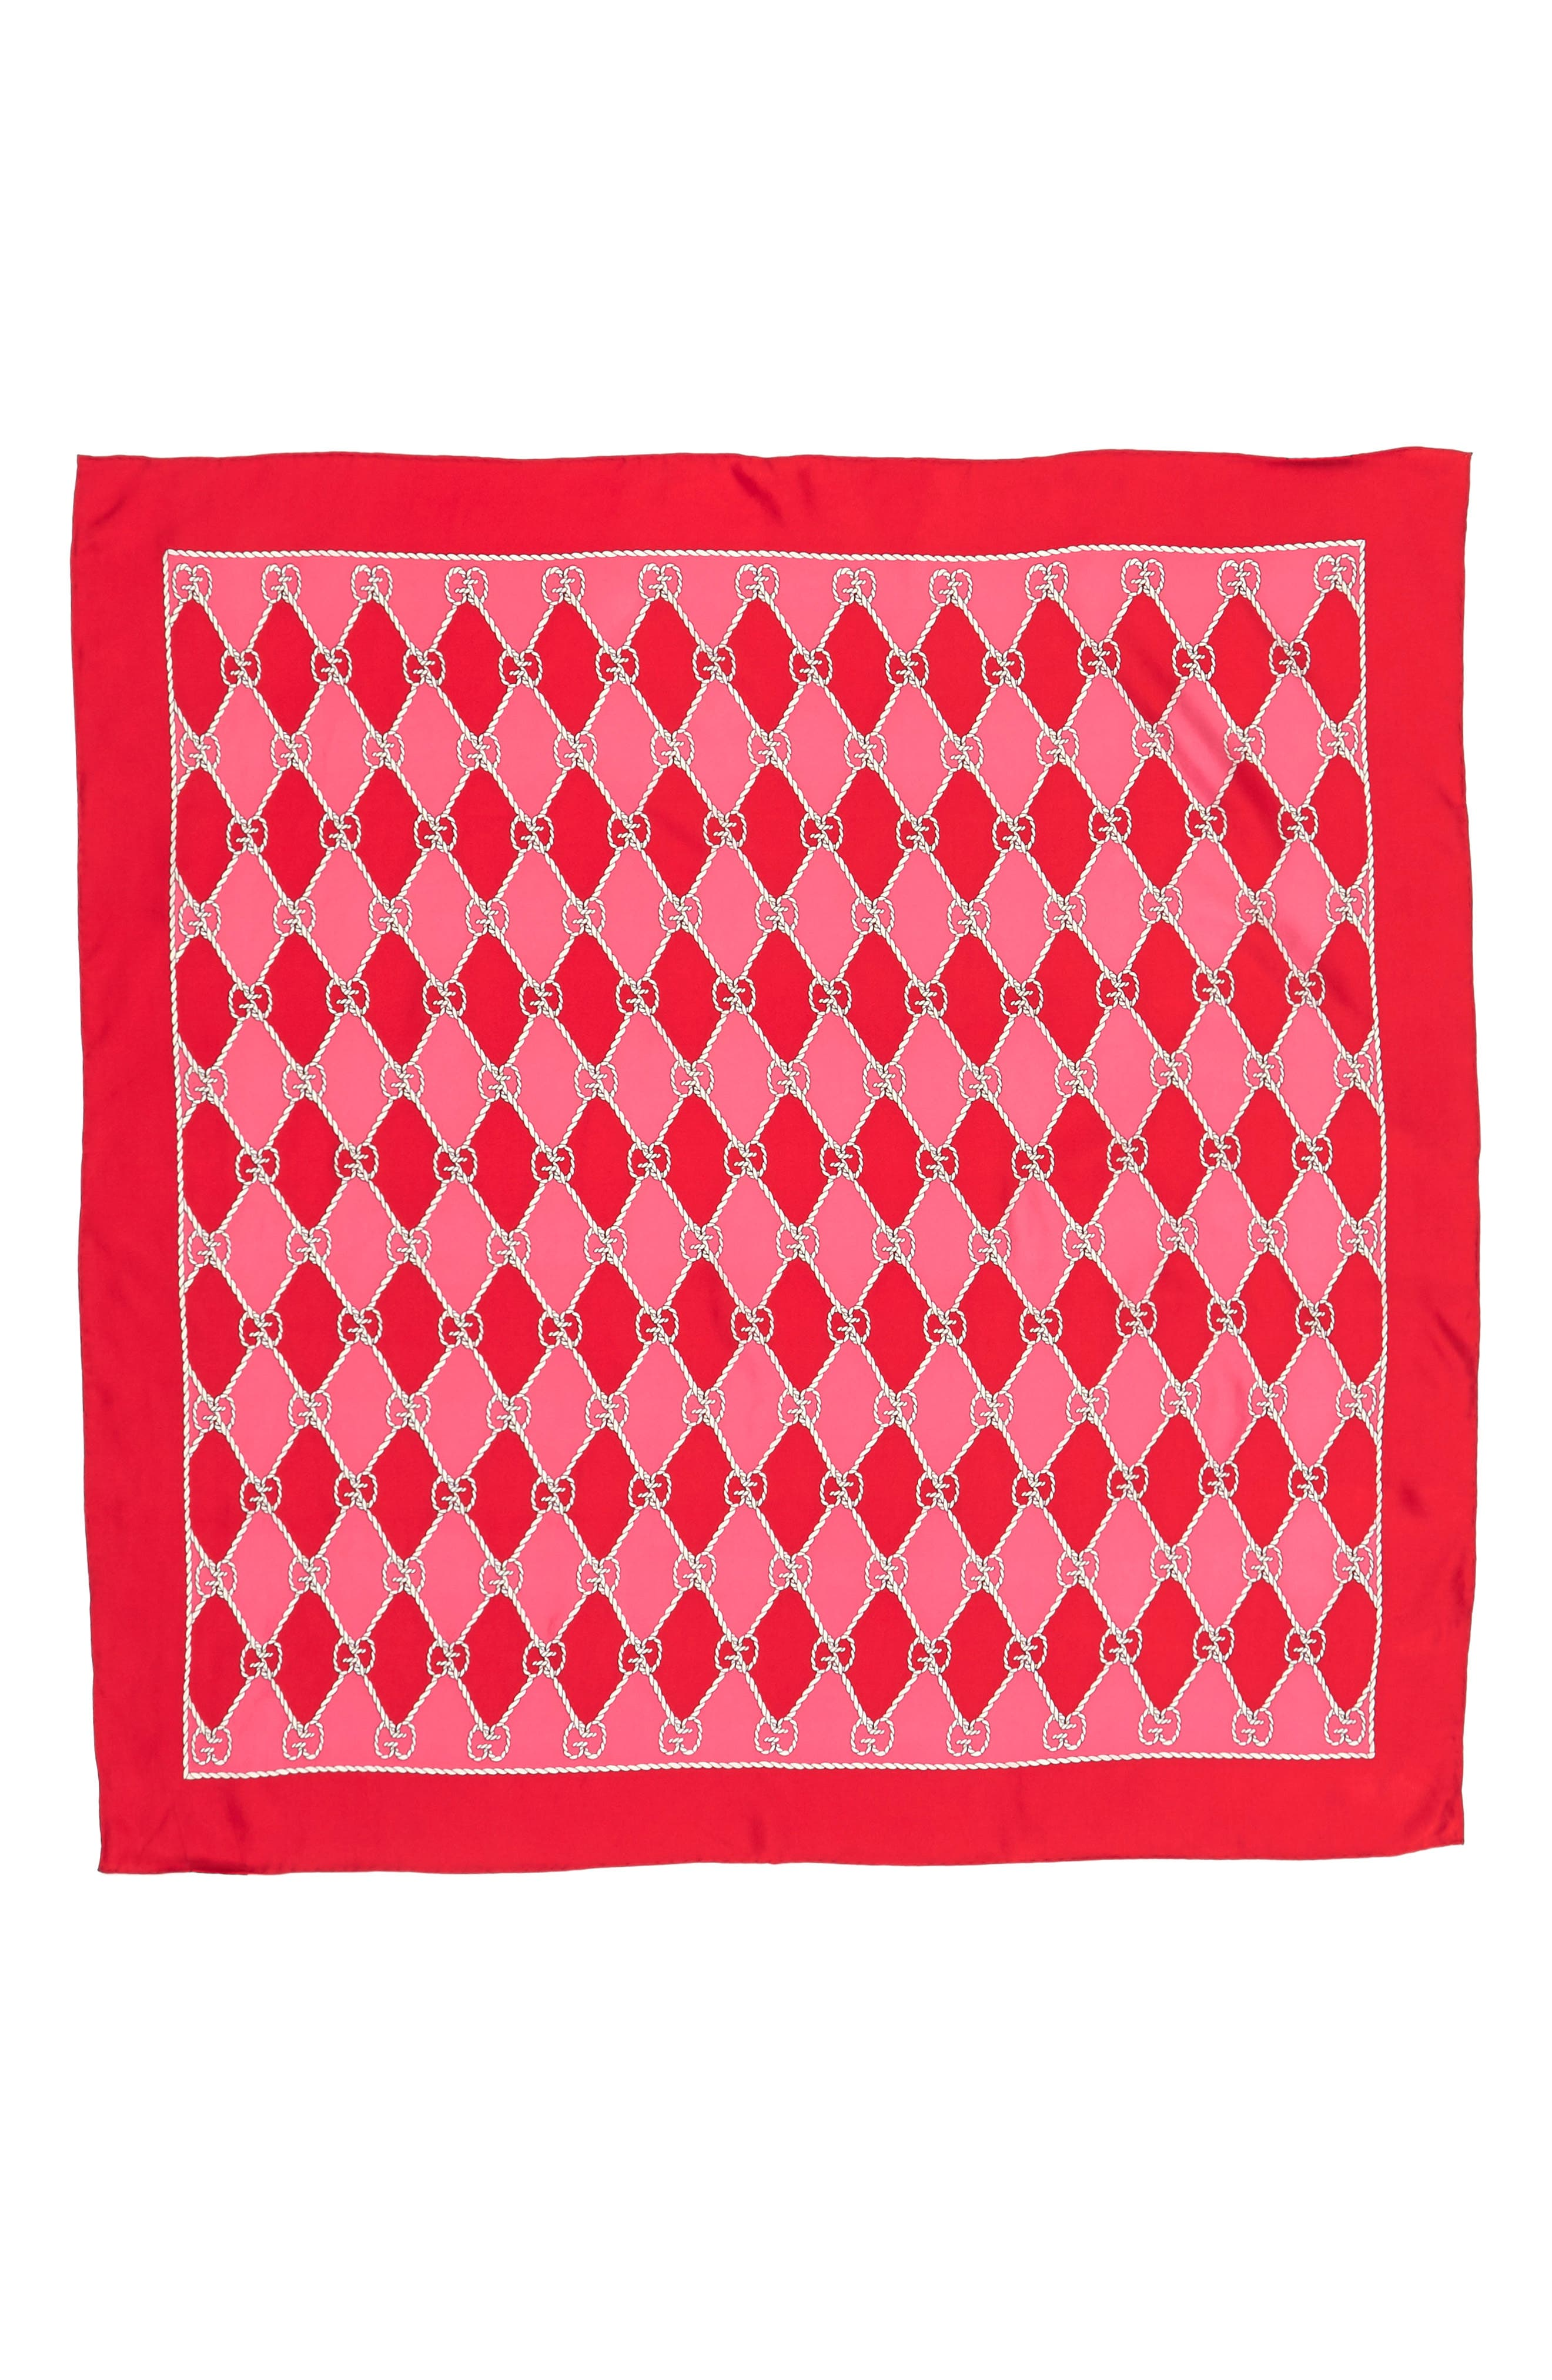 Rhombus Chane Square Foulard Silk Scarf,                             Alternate thumbnail 2, color,                             Red/ Pink